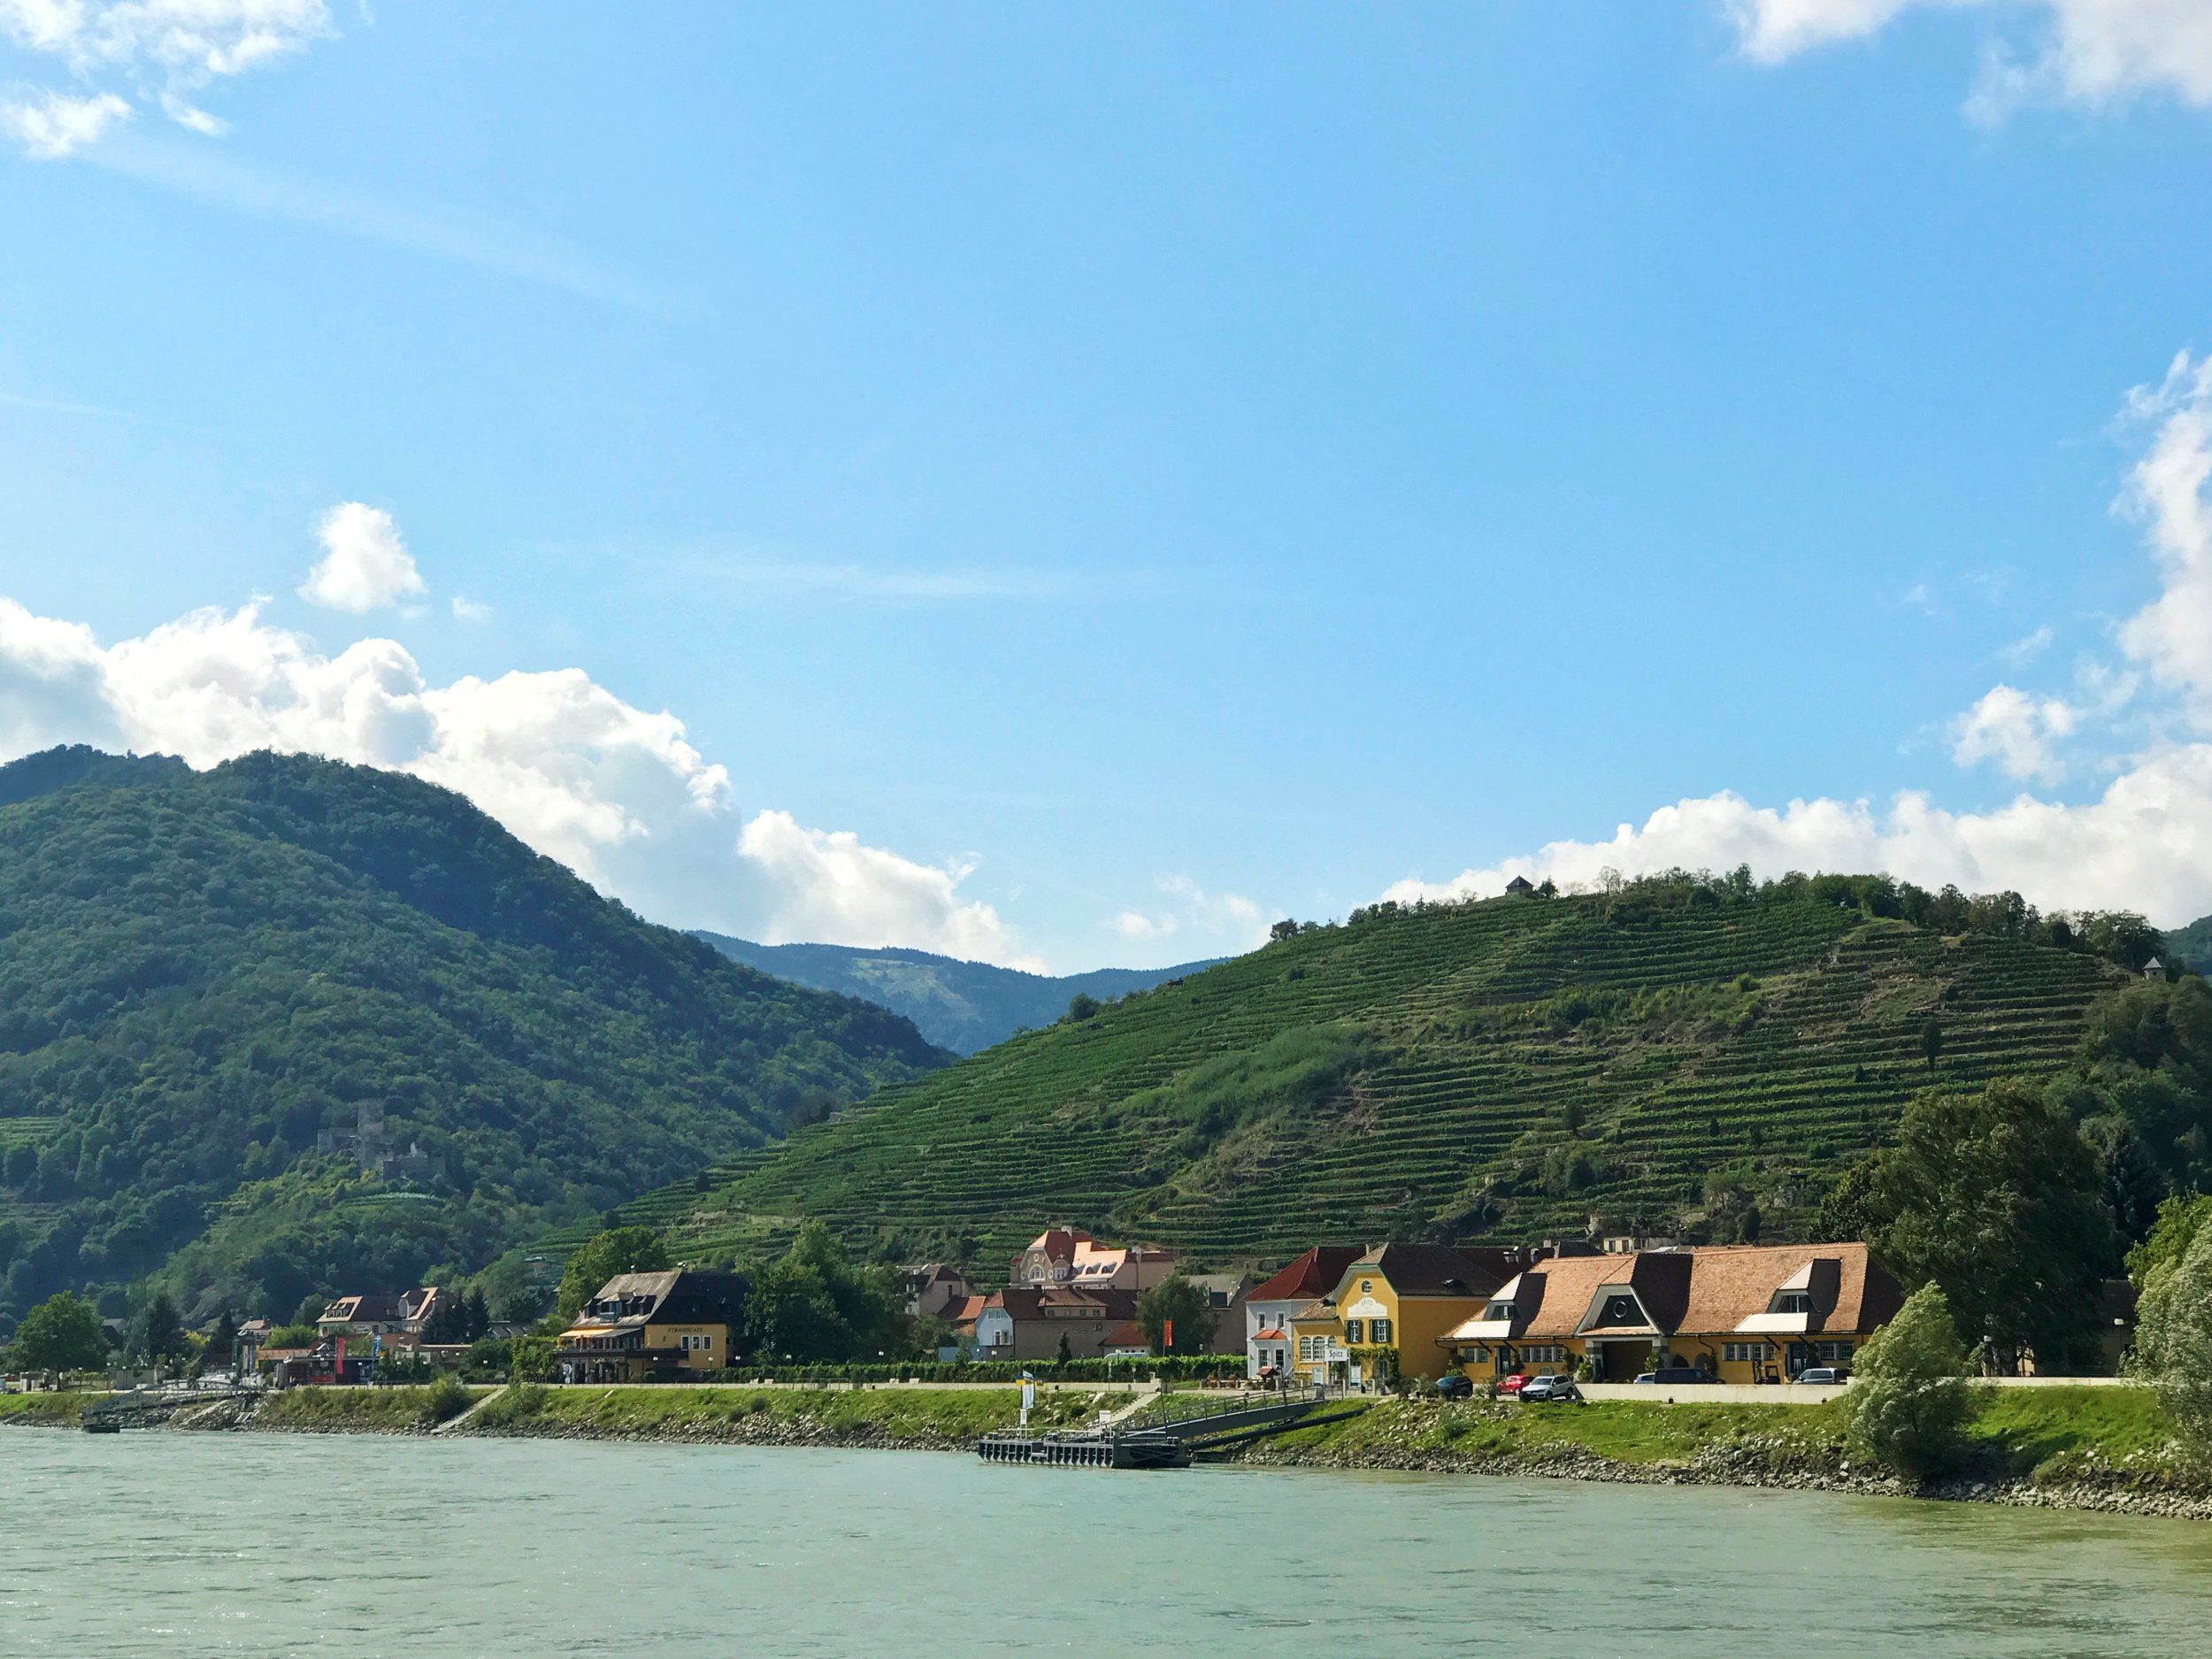 Castle ruins, vineyards, churches and red-roofed villages along the banks of the Danube in Austria's Wachau Valley are what dreams are made of. (PHOTO BY BIANCA BUSTOS-VELAZQUEZ)